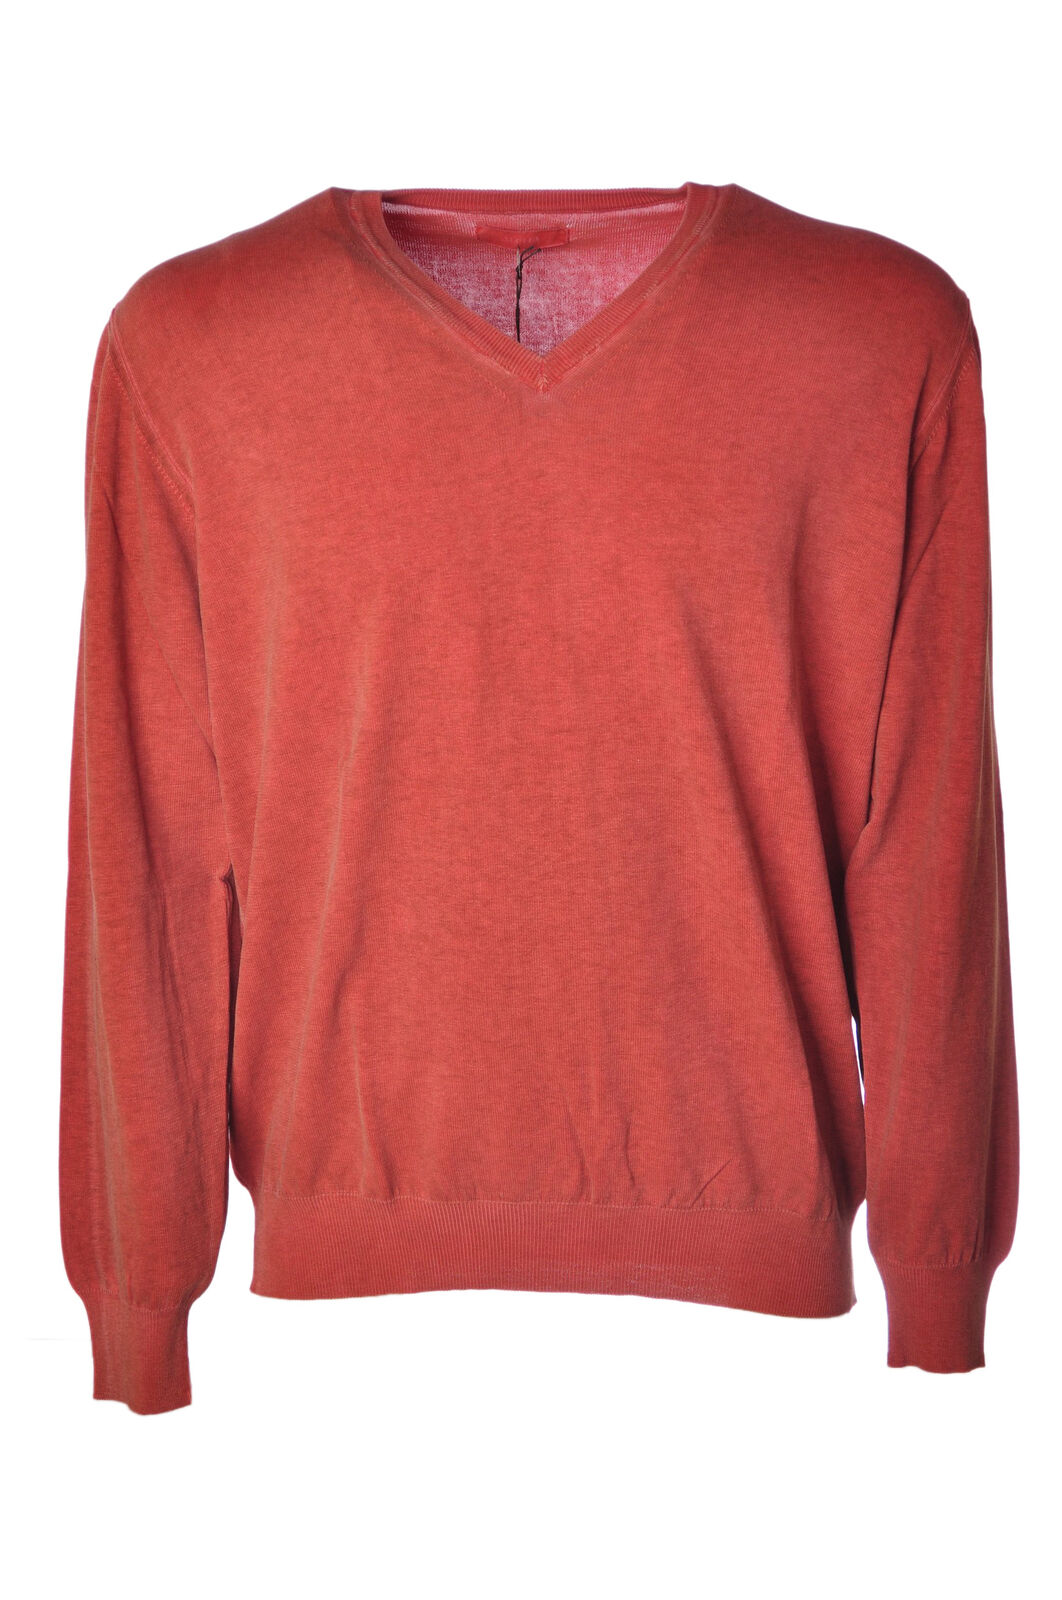 Alpha  -  Sweaters - Male - Red - 4624422A185059